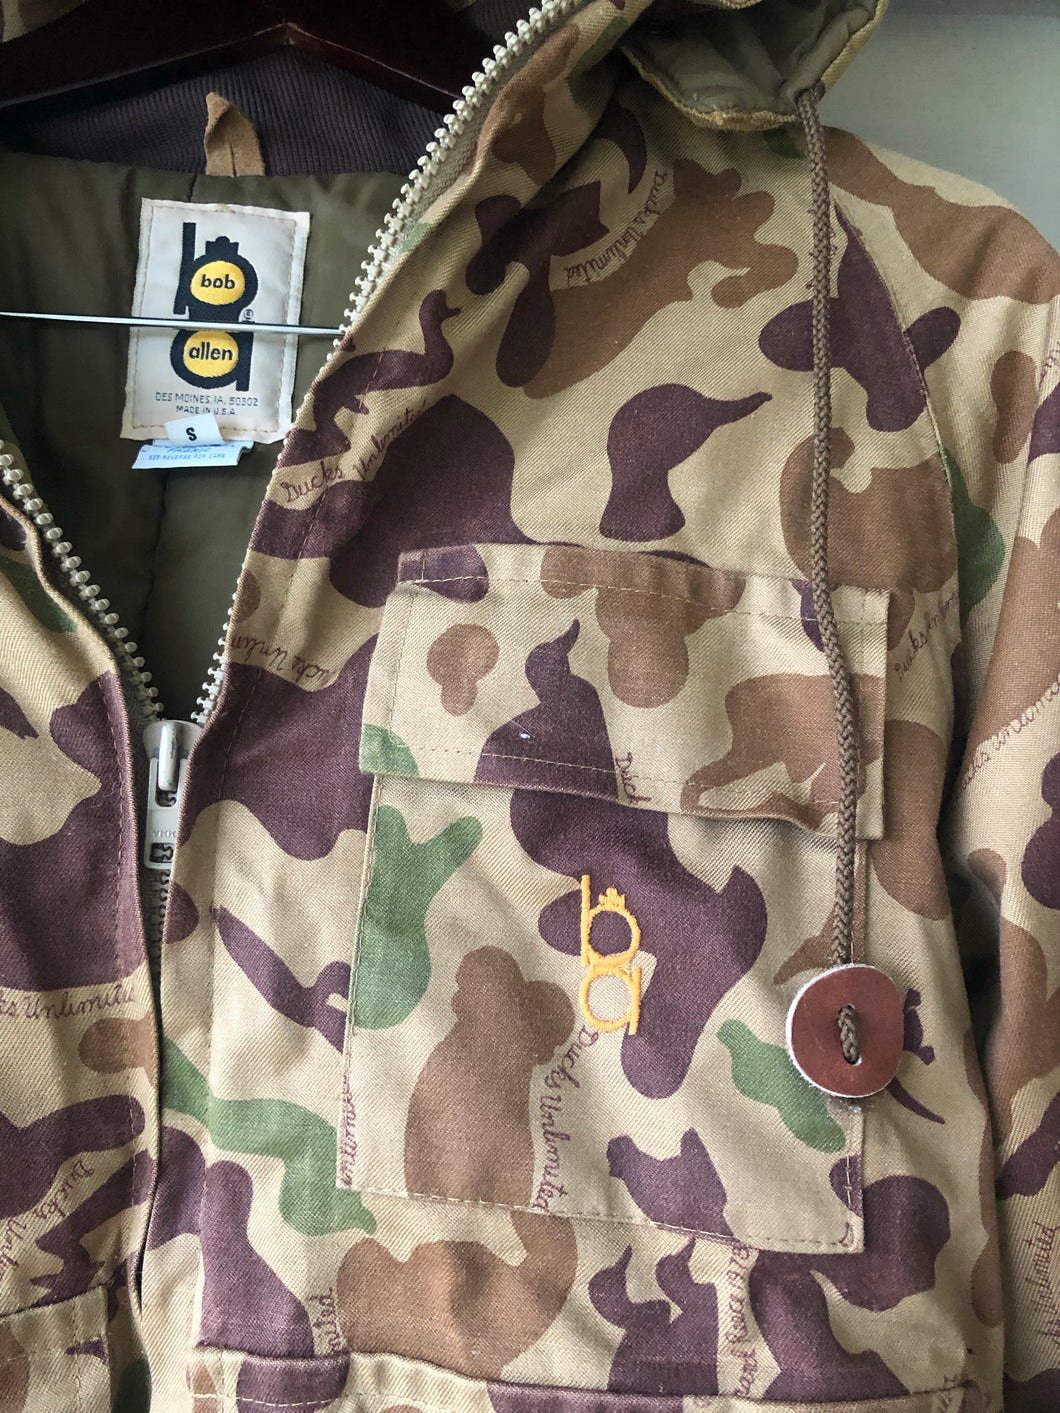 Bob Allen Ducks Unlimited Jacket (S)